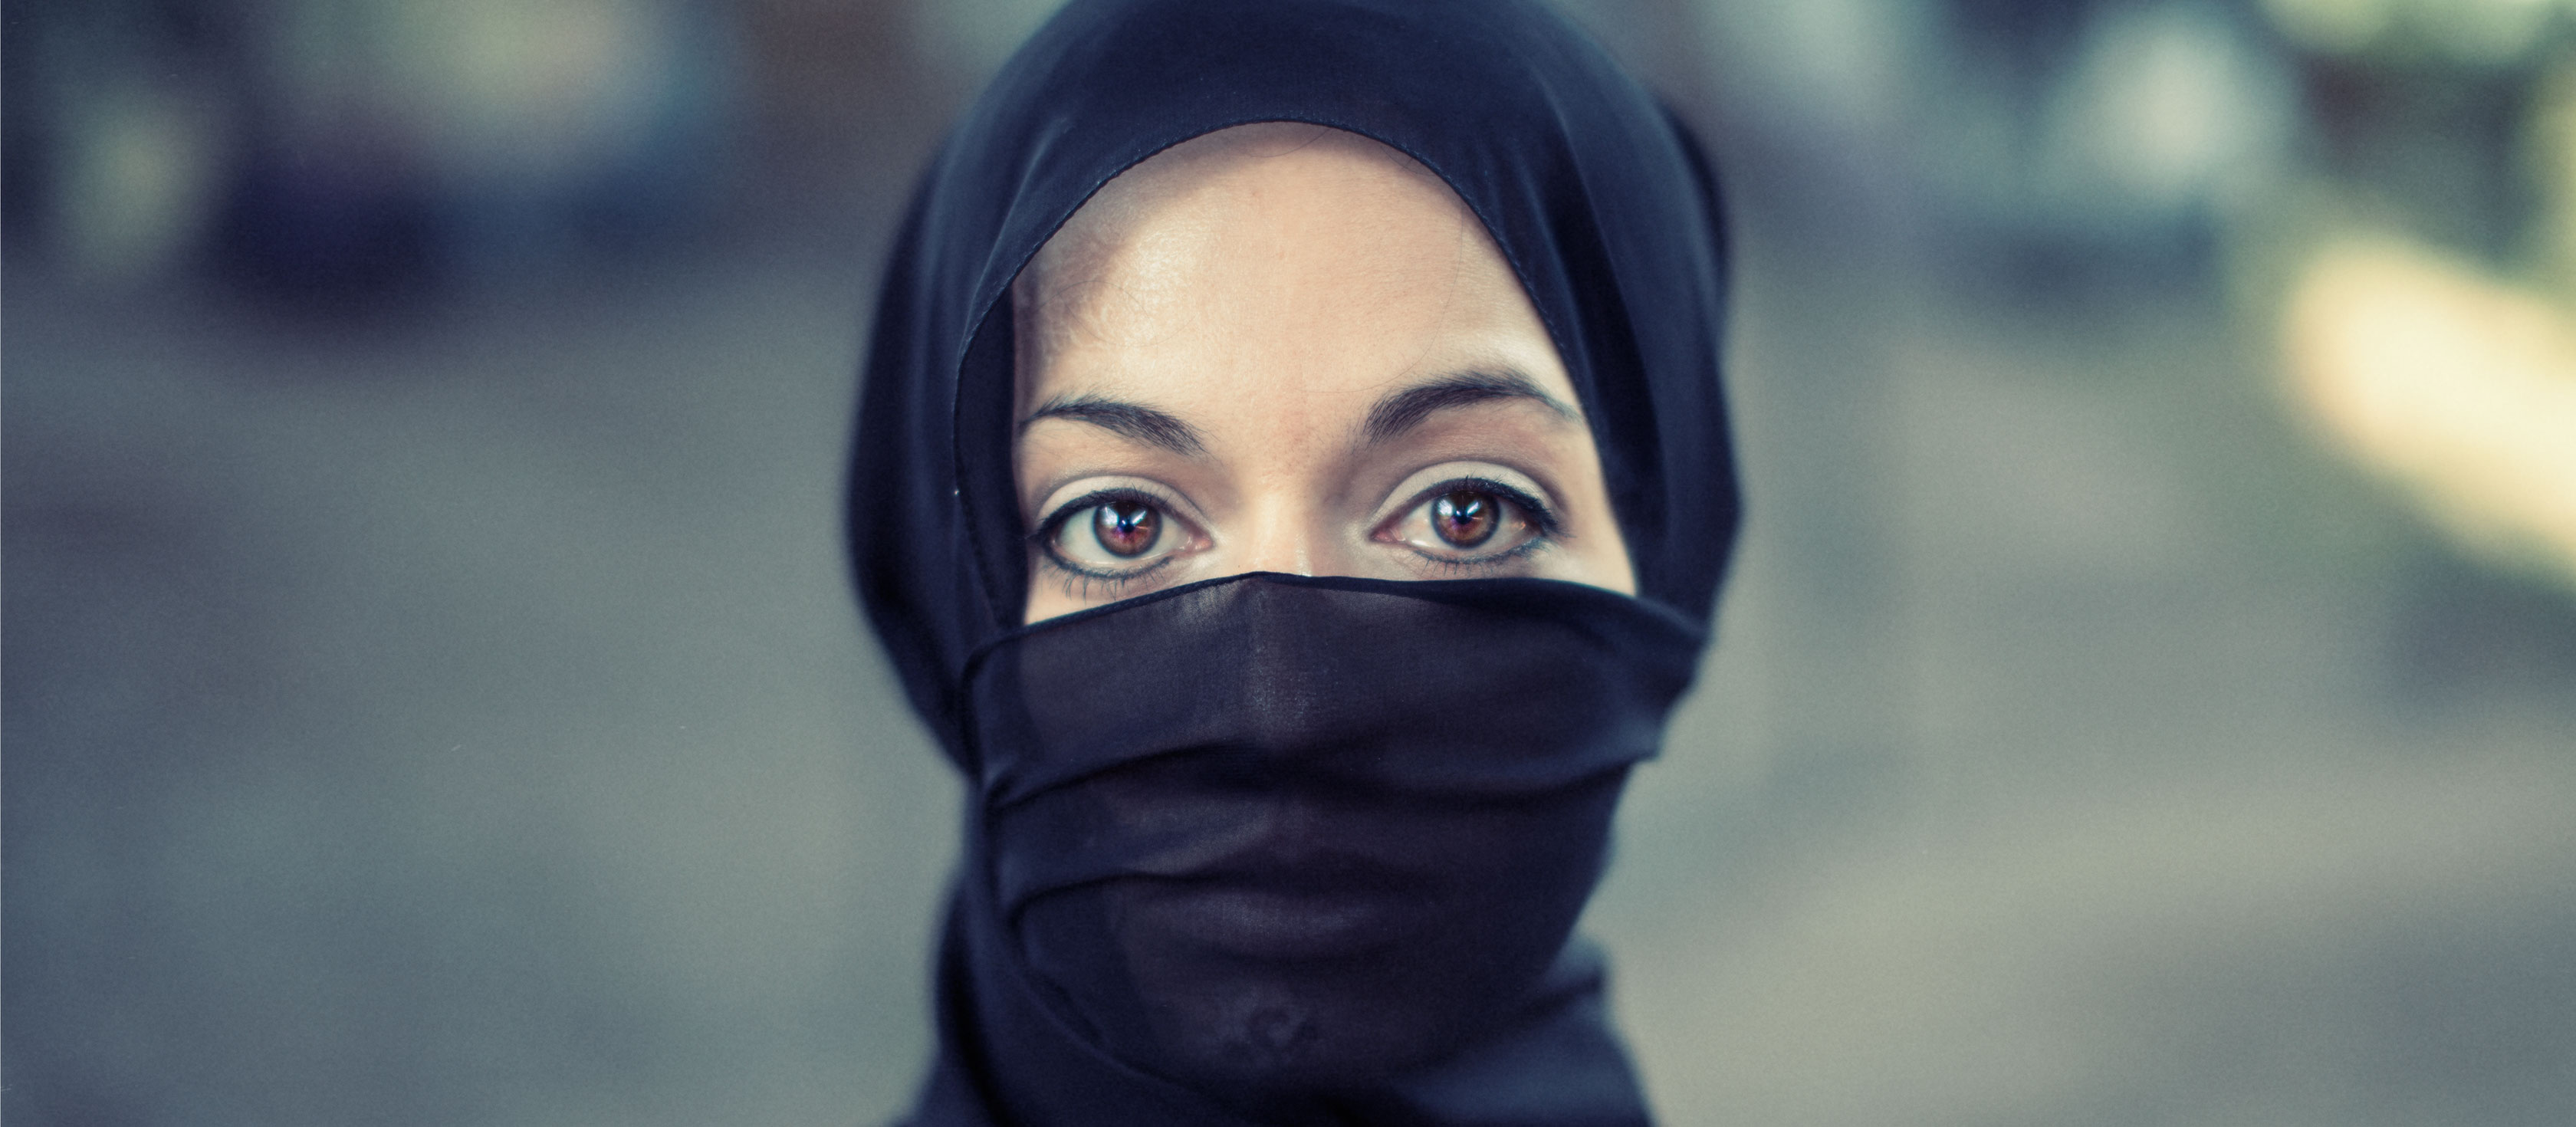 Good Boy Wolf Photographer, filmic portrait, Muslim lady wearing burka